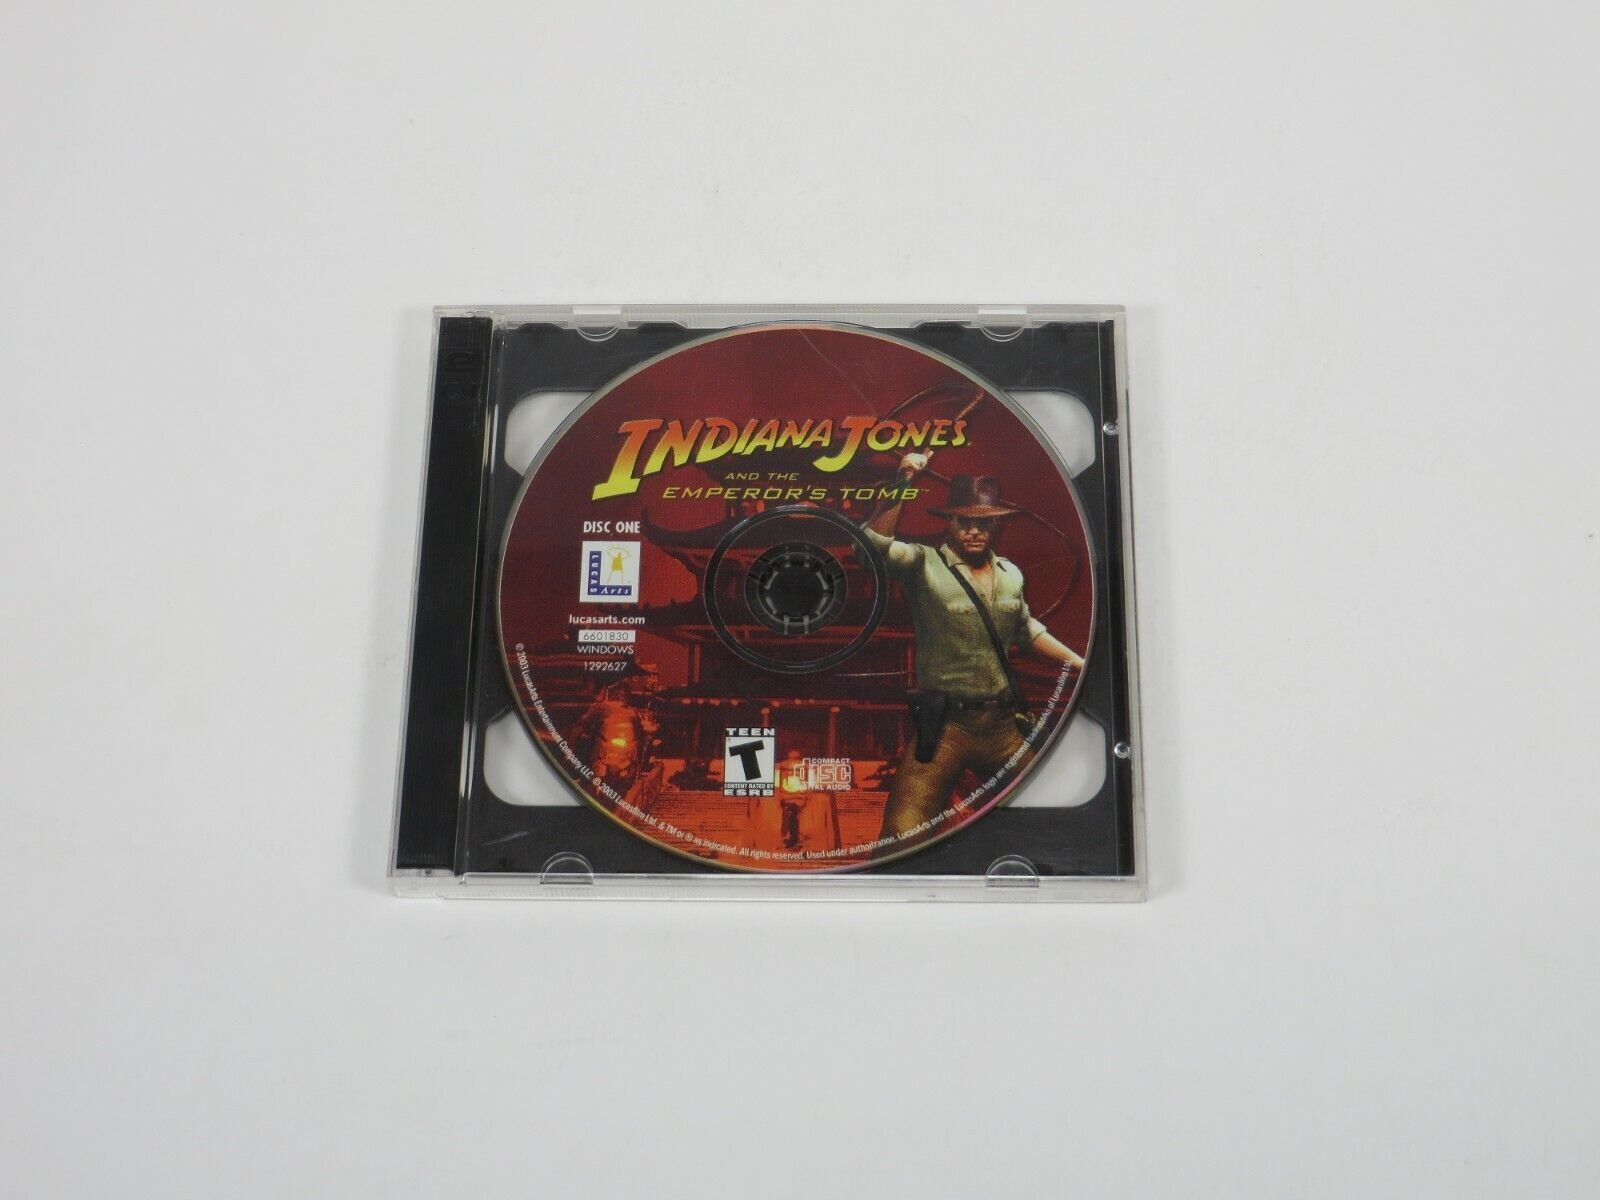 Computer Games - Indiana Jones and the Emperor's Tomb (PC, 2004) PC Vintage Computer Game